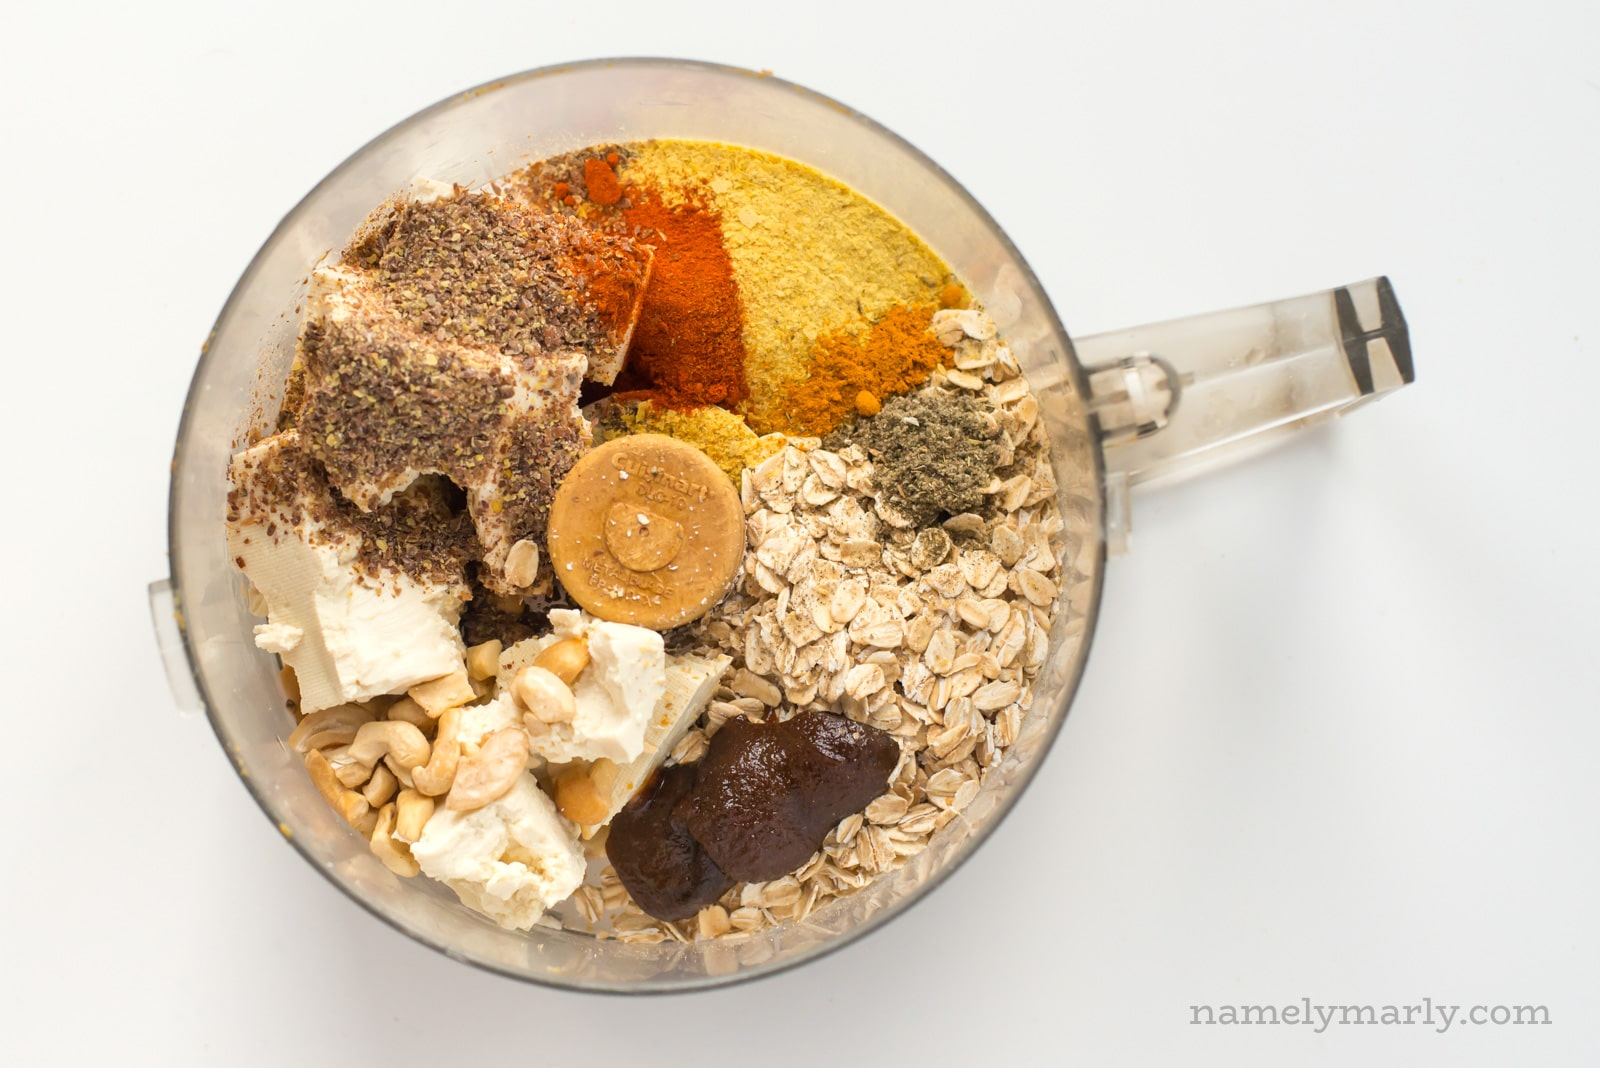 Looking down at a bowl of a food processor with ingredients in it, including oatmeal, tofu, spices, and more.